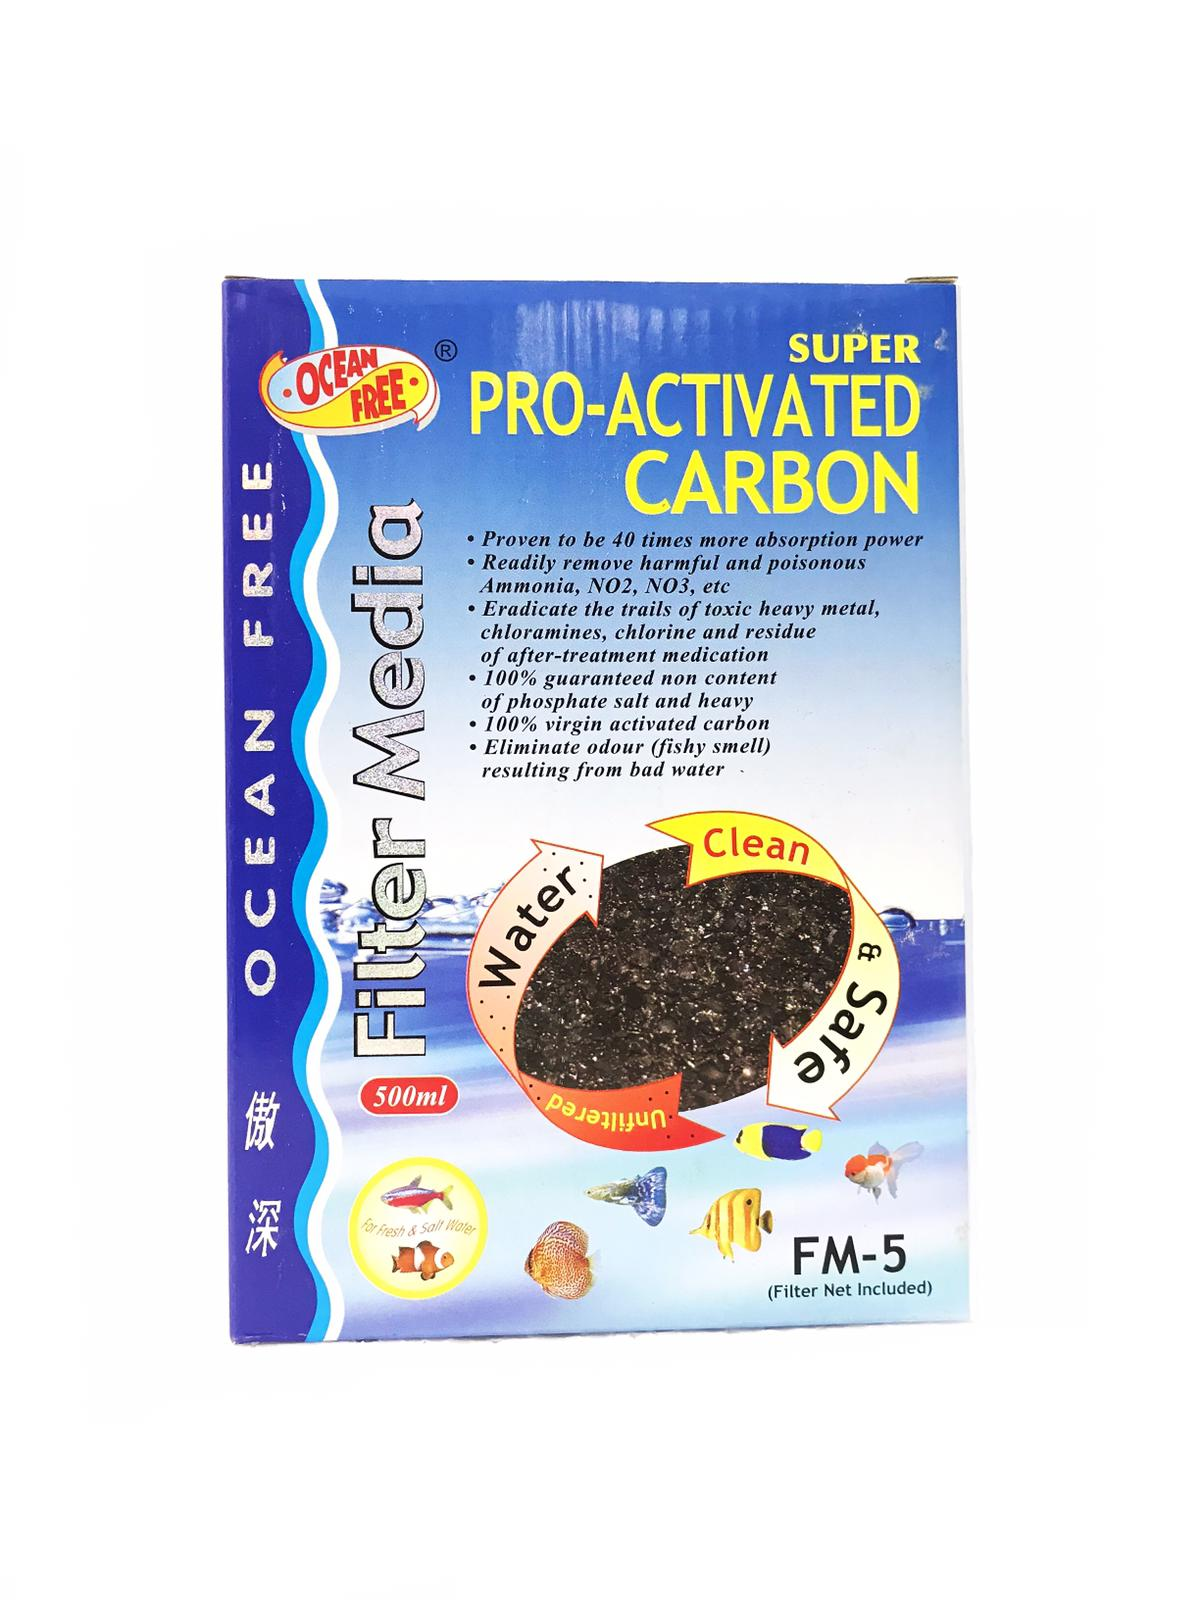 OF Super Pro-Activated Carbon FM-5